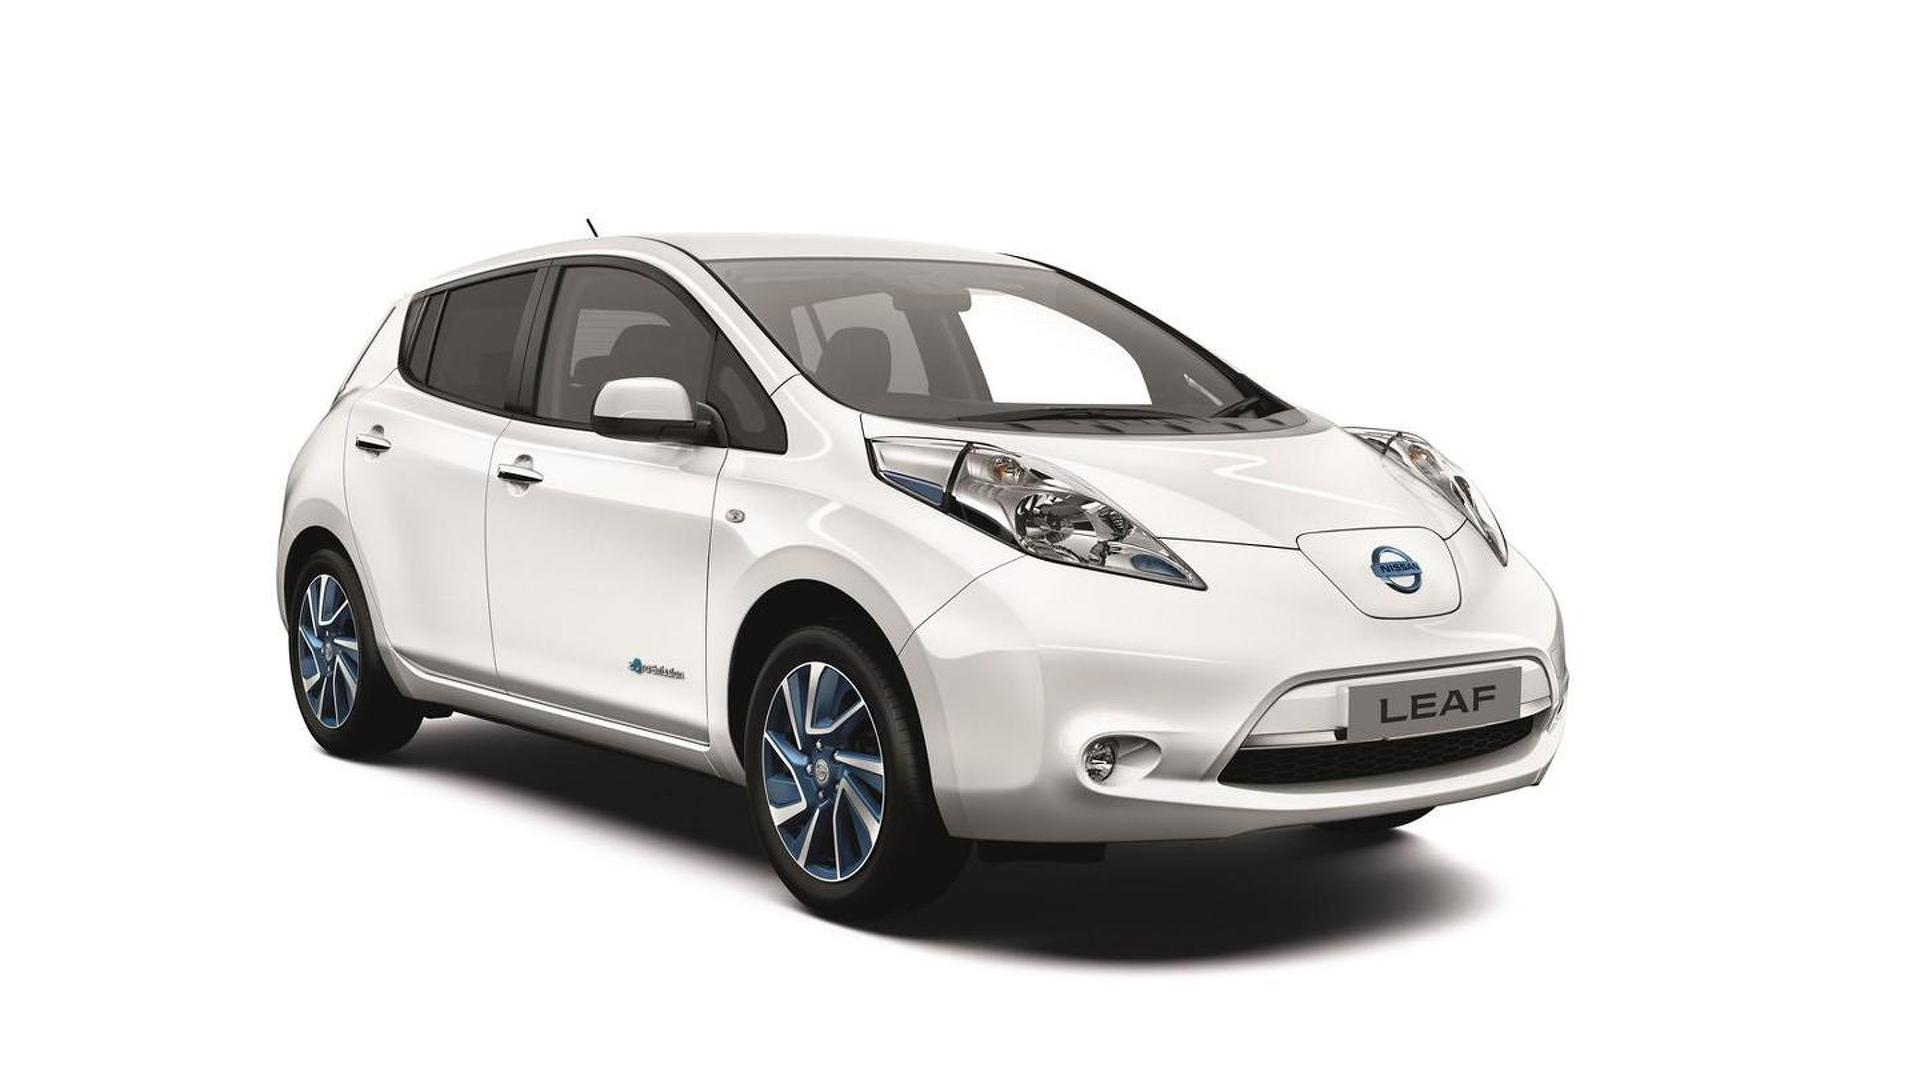 Next generation Nissan Leaf could spawn crossover